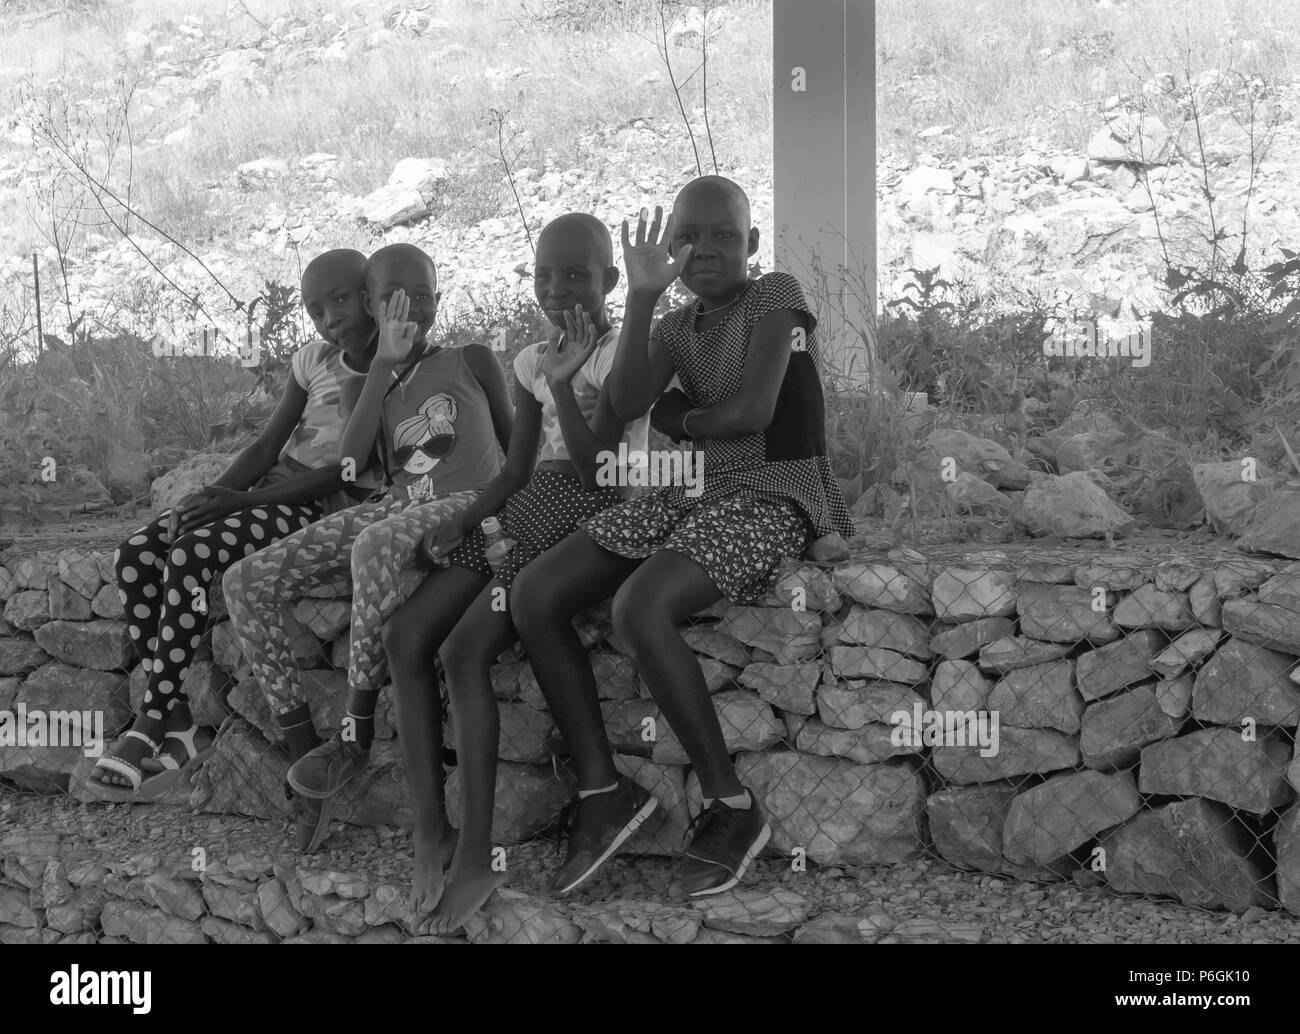 KHOHAXIS, NAMIBIA - MAY 21 2018;  Group of African girls sitting in shade waving happily responding to being photographed in black and white - Stock Image